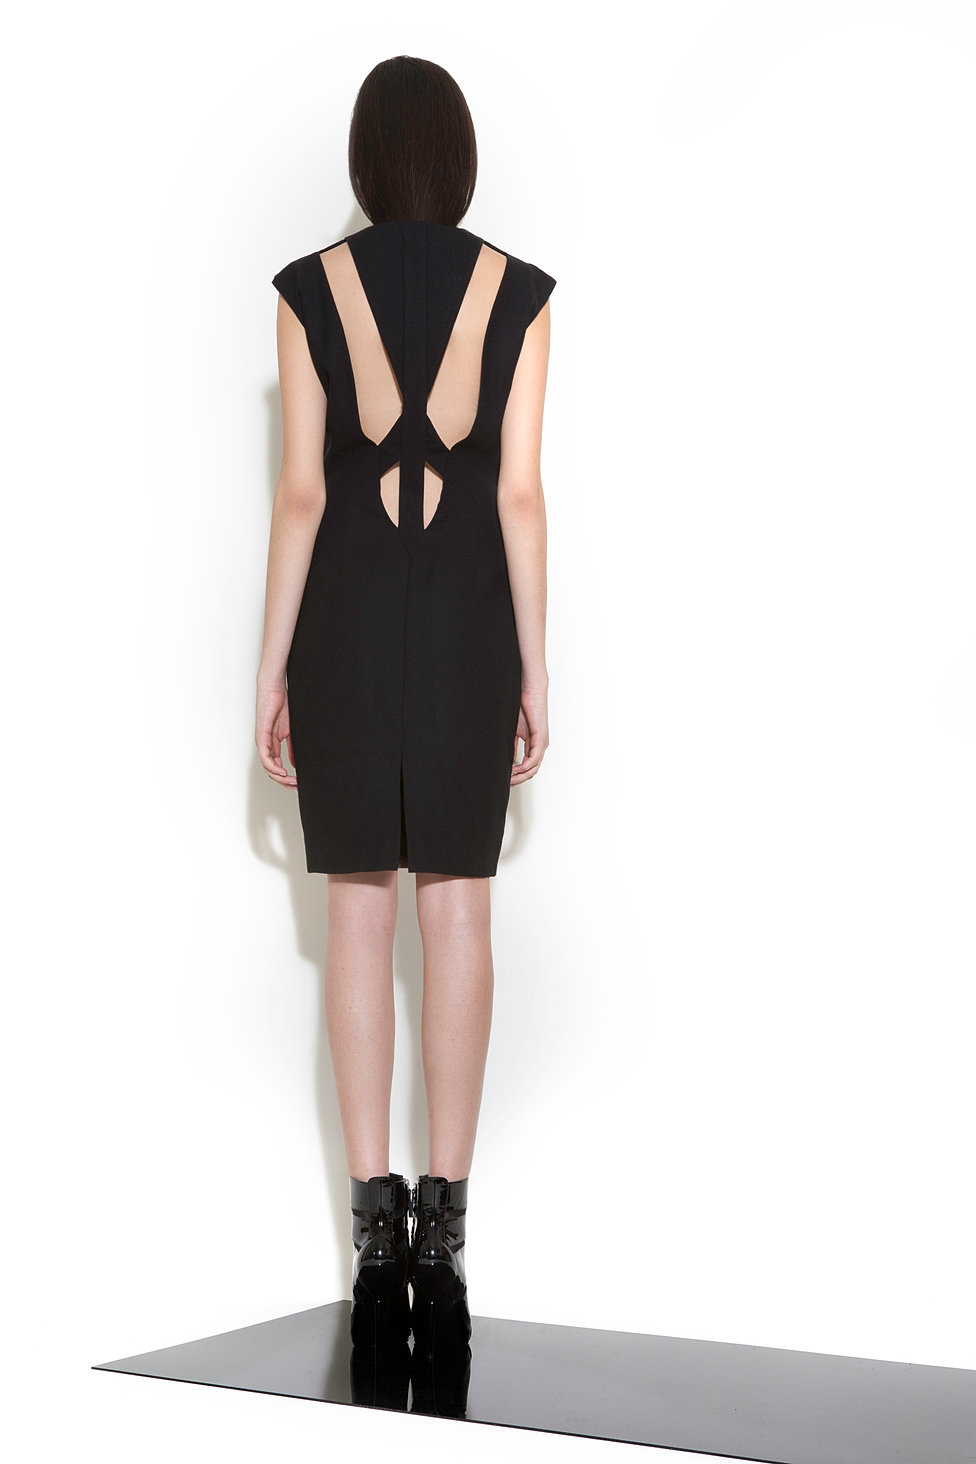 LOOK 9 (Back)